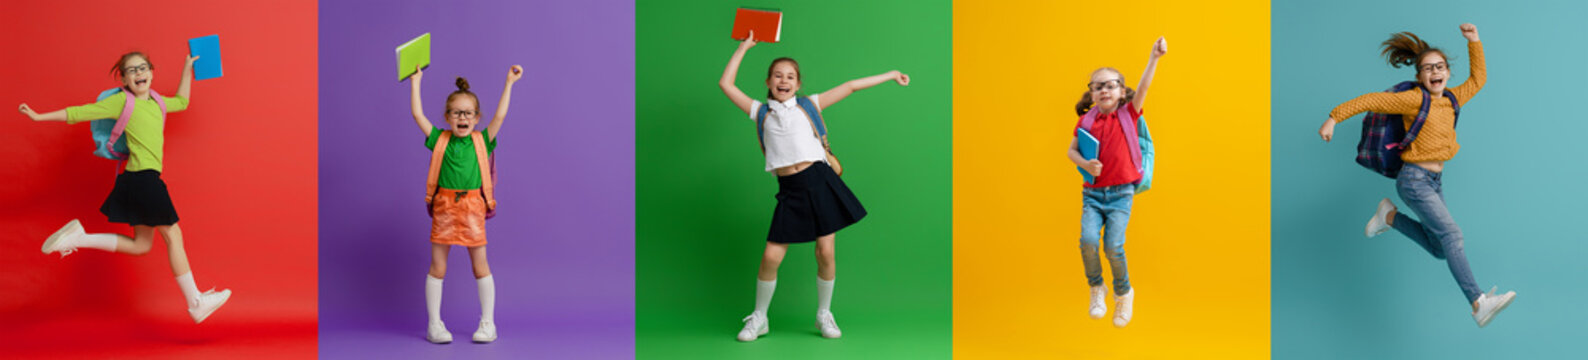 Kids with backpacks on colorful background